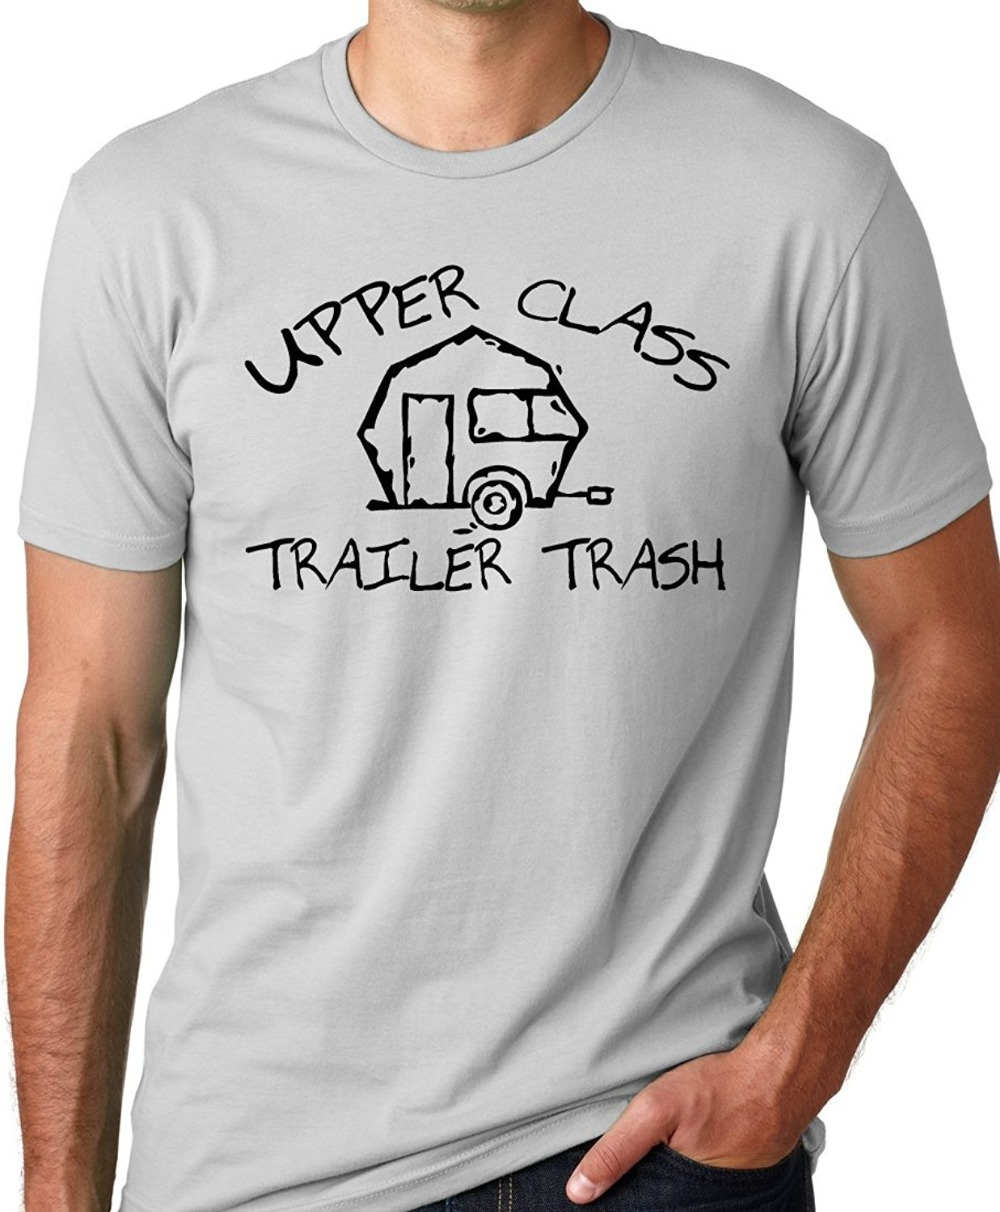 2018 Best T Shirts Upper Class Trailer Trash Funny T-Shirt Trailer Park Humor Men Funny casual streetwear hip hop printed T shi